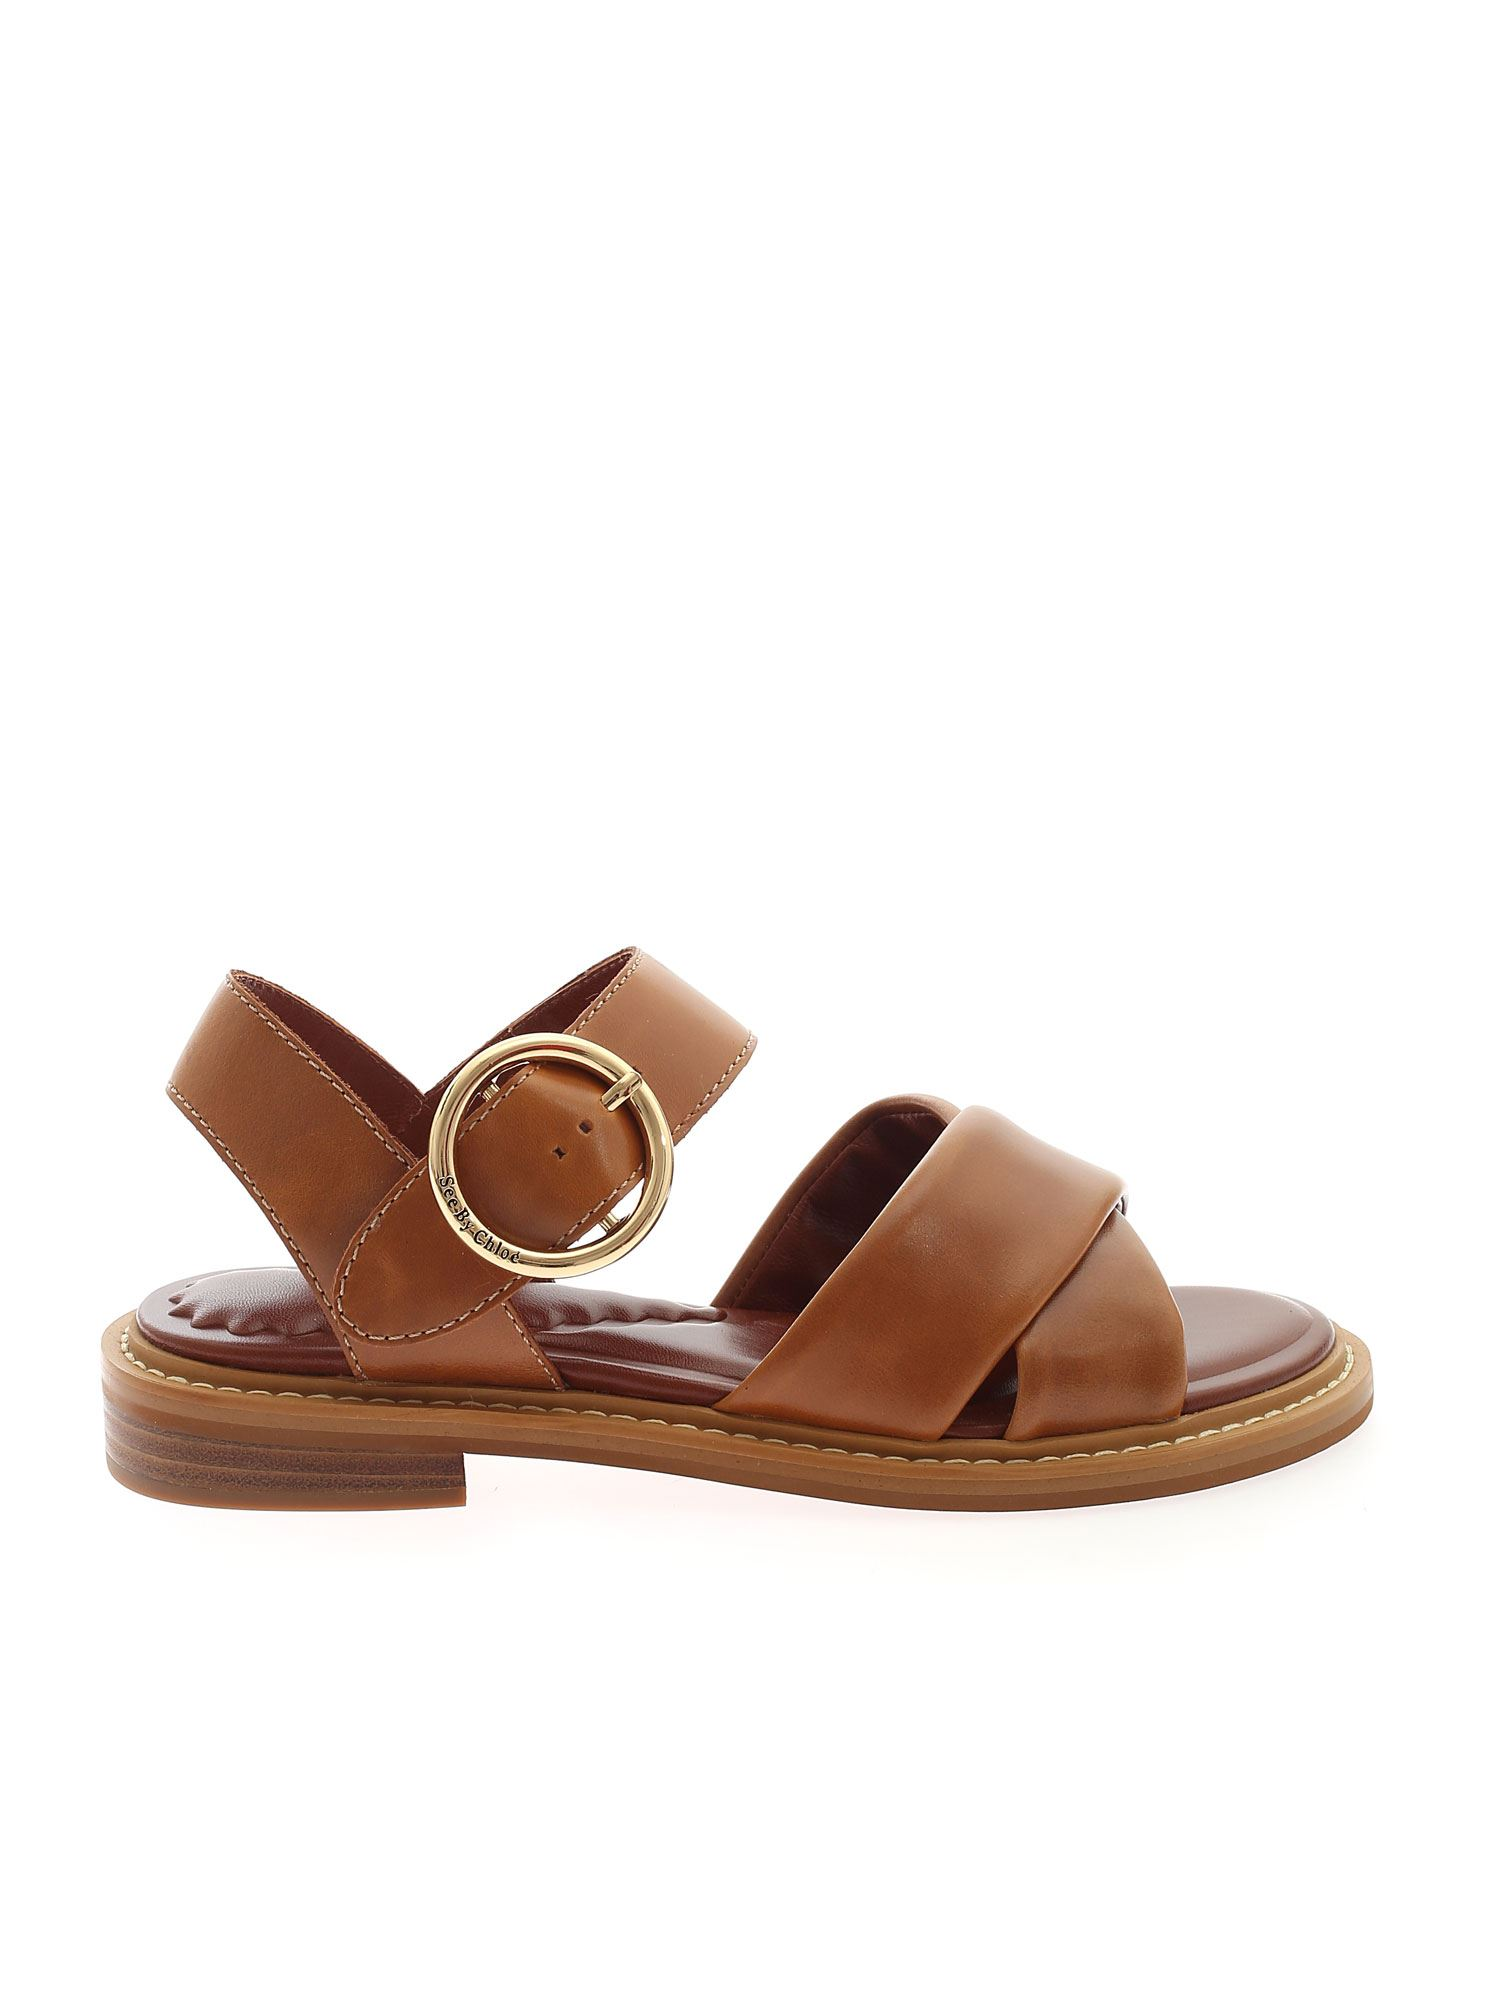 See By Chloé Leathers NOTO SANDALS IN LEATHER COLOR